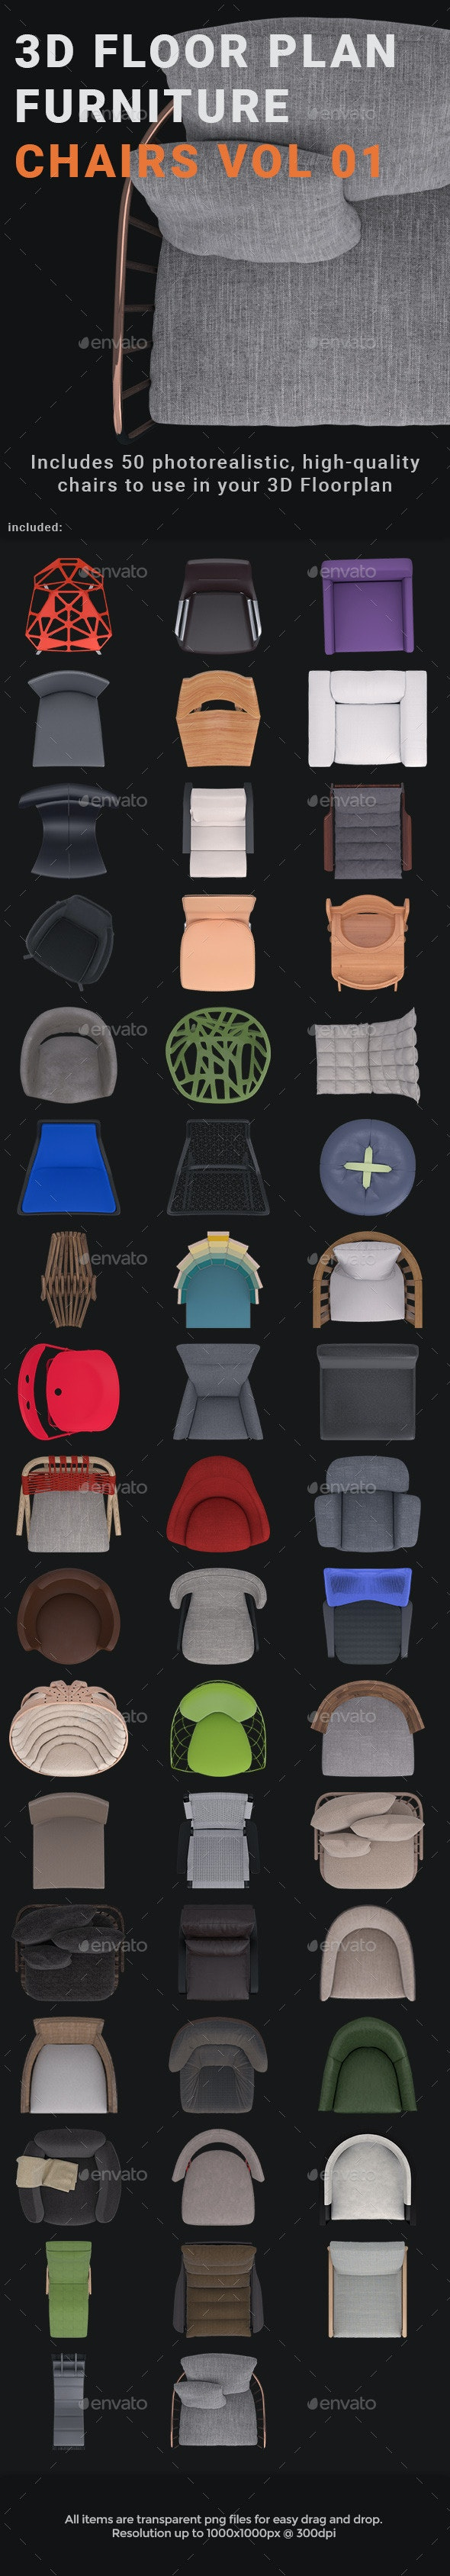 3D Floorplan Furniture Chairs Vol01 - Miscellaneous Graphics